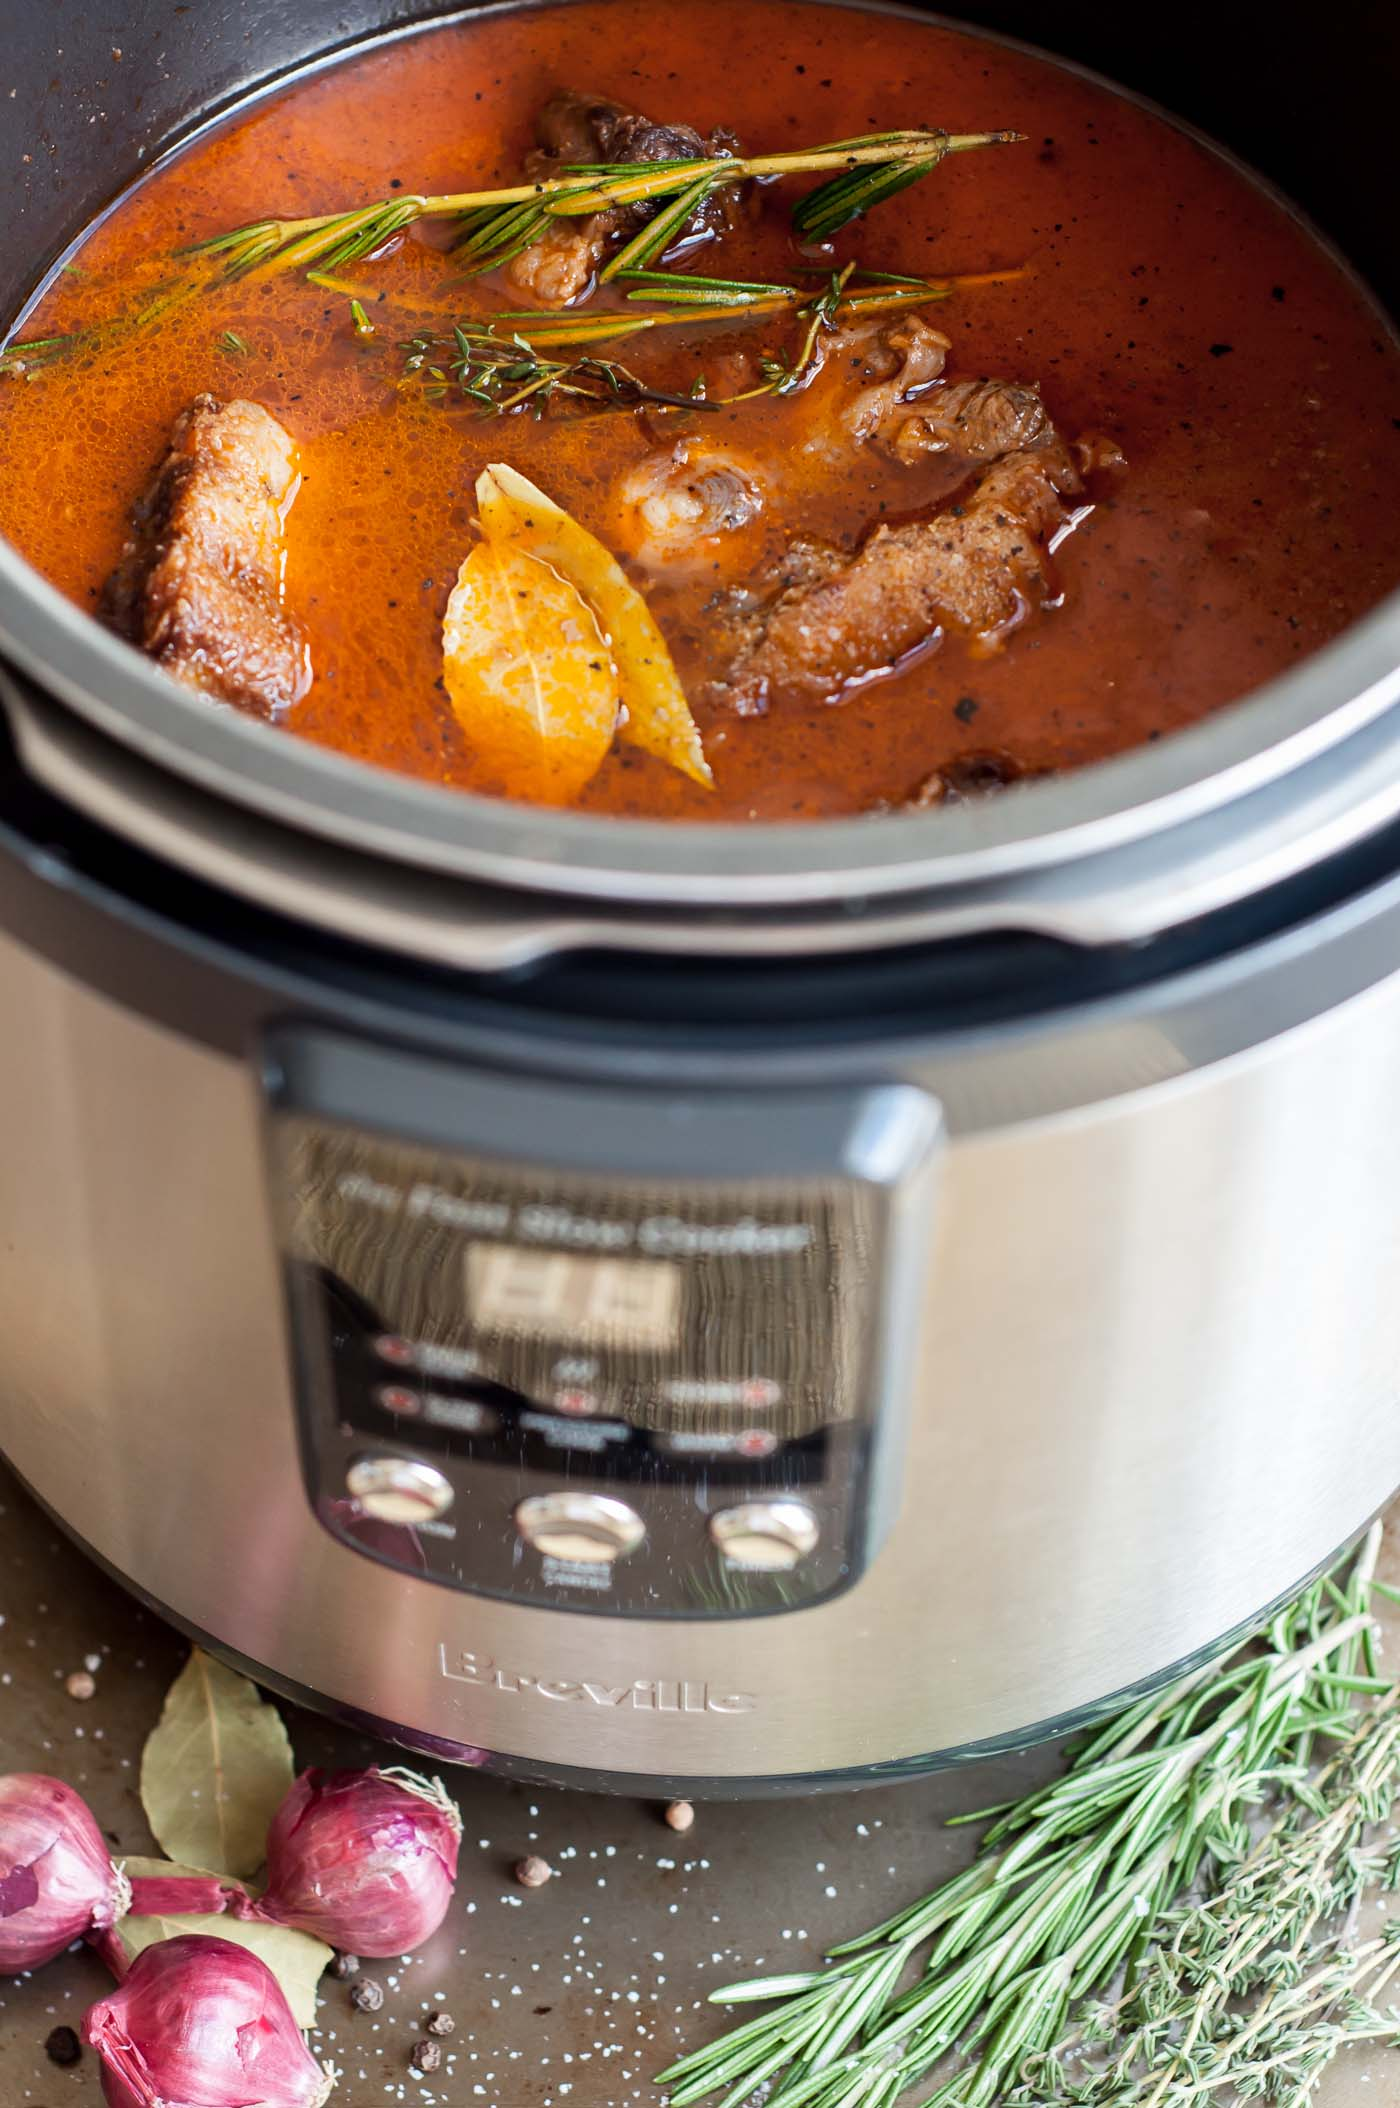 how to cook vegetables in microwave pressure cooker